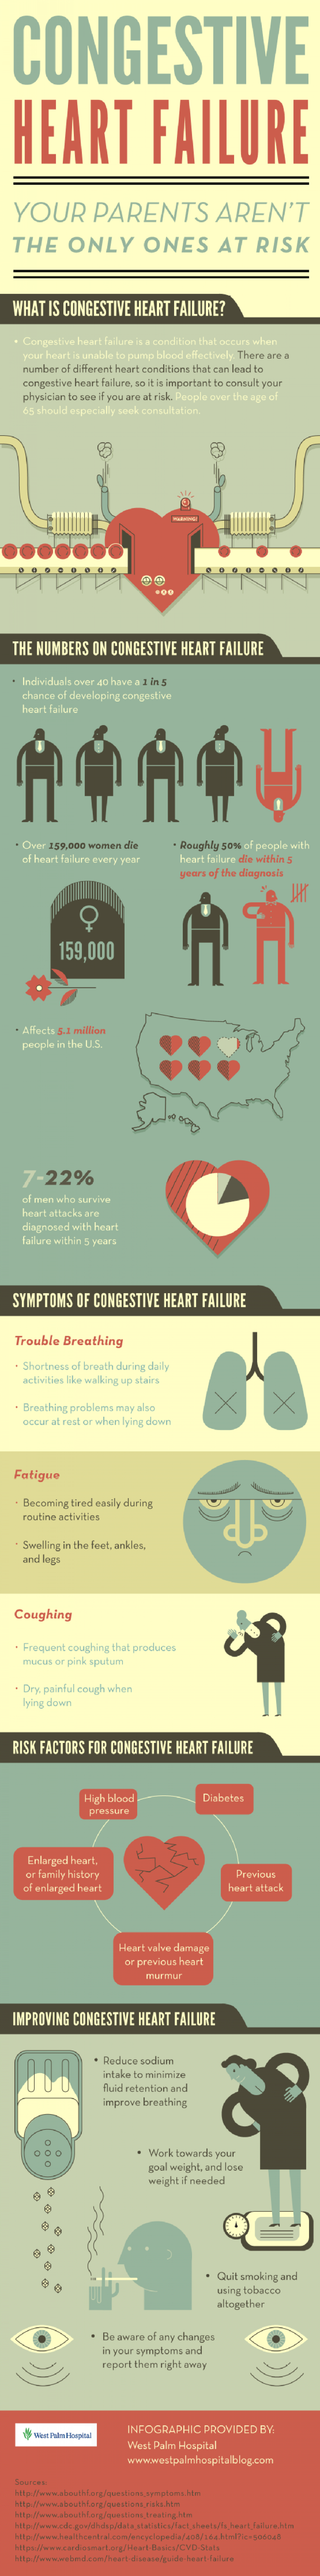 Congestive Heart Failure – Your Parents Aren't the Only Ones at Risk  Infographic